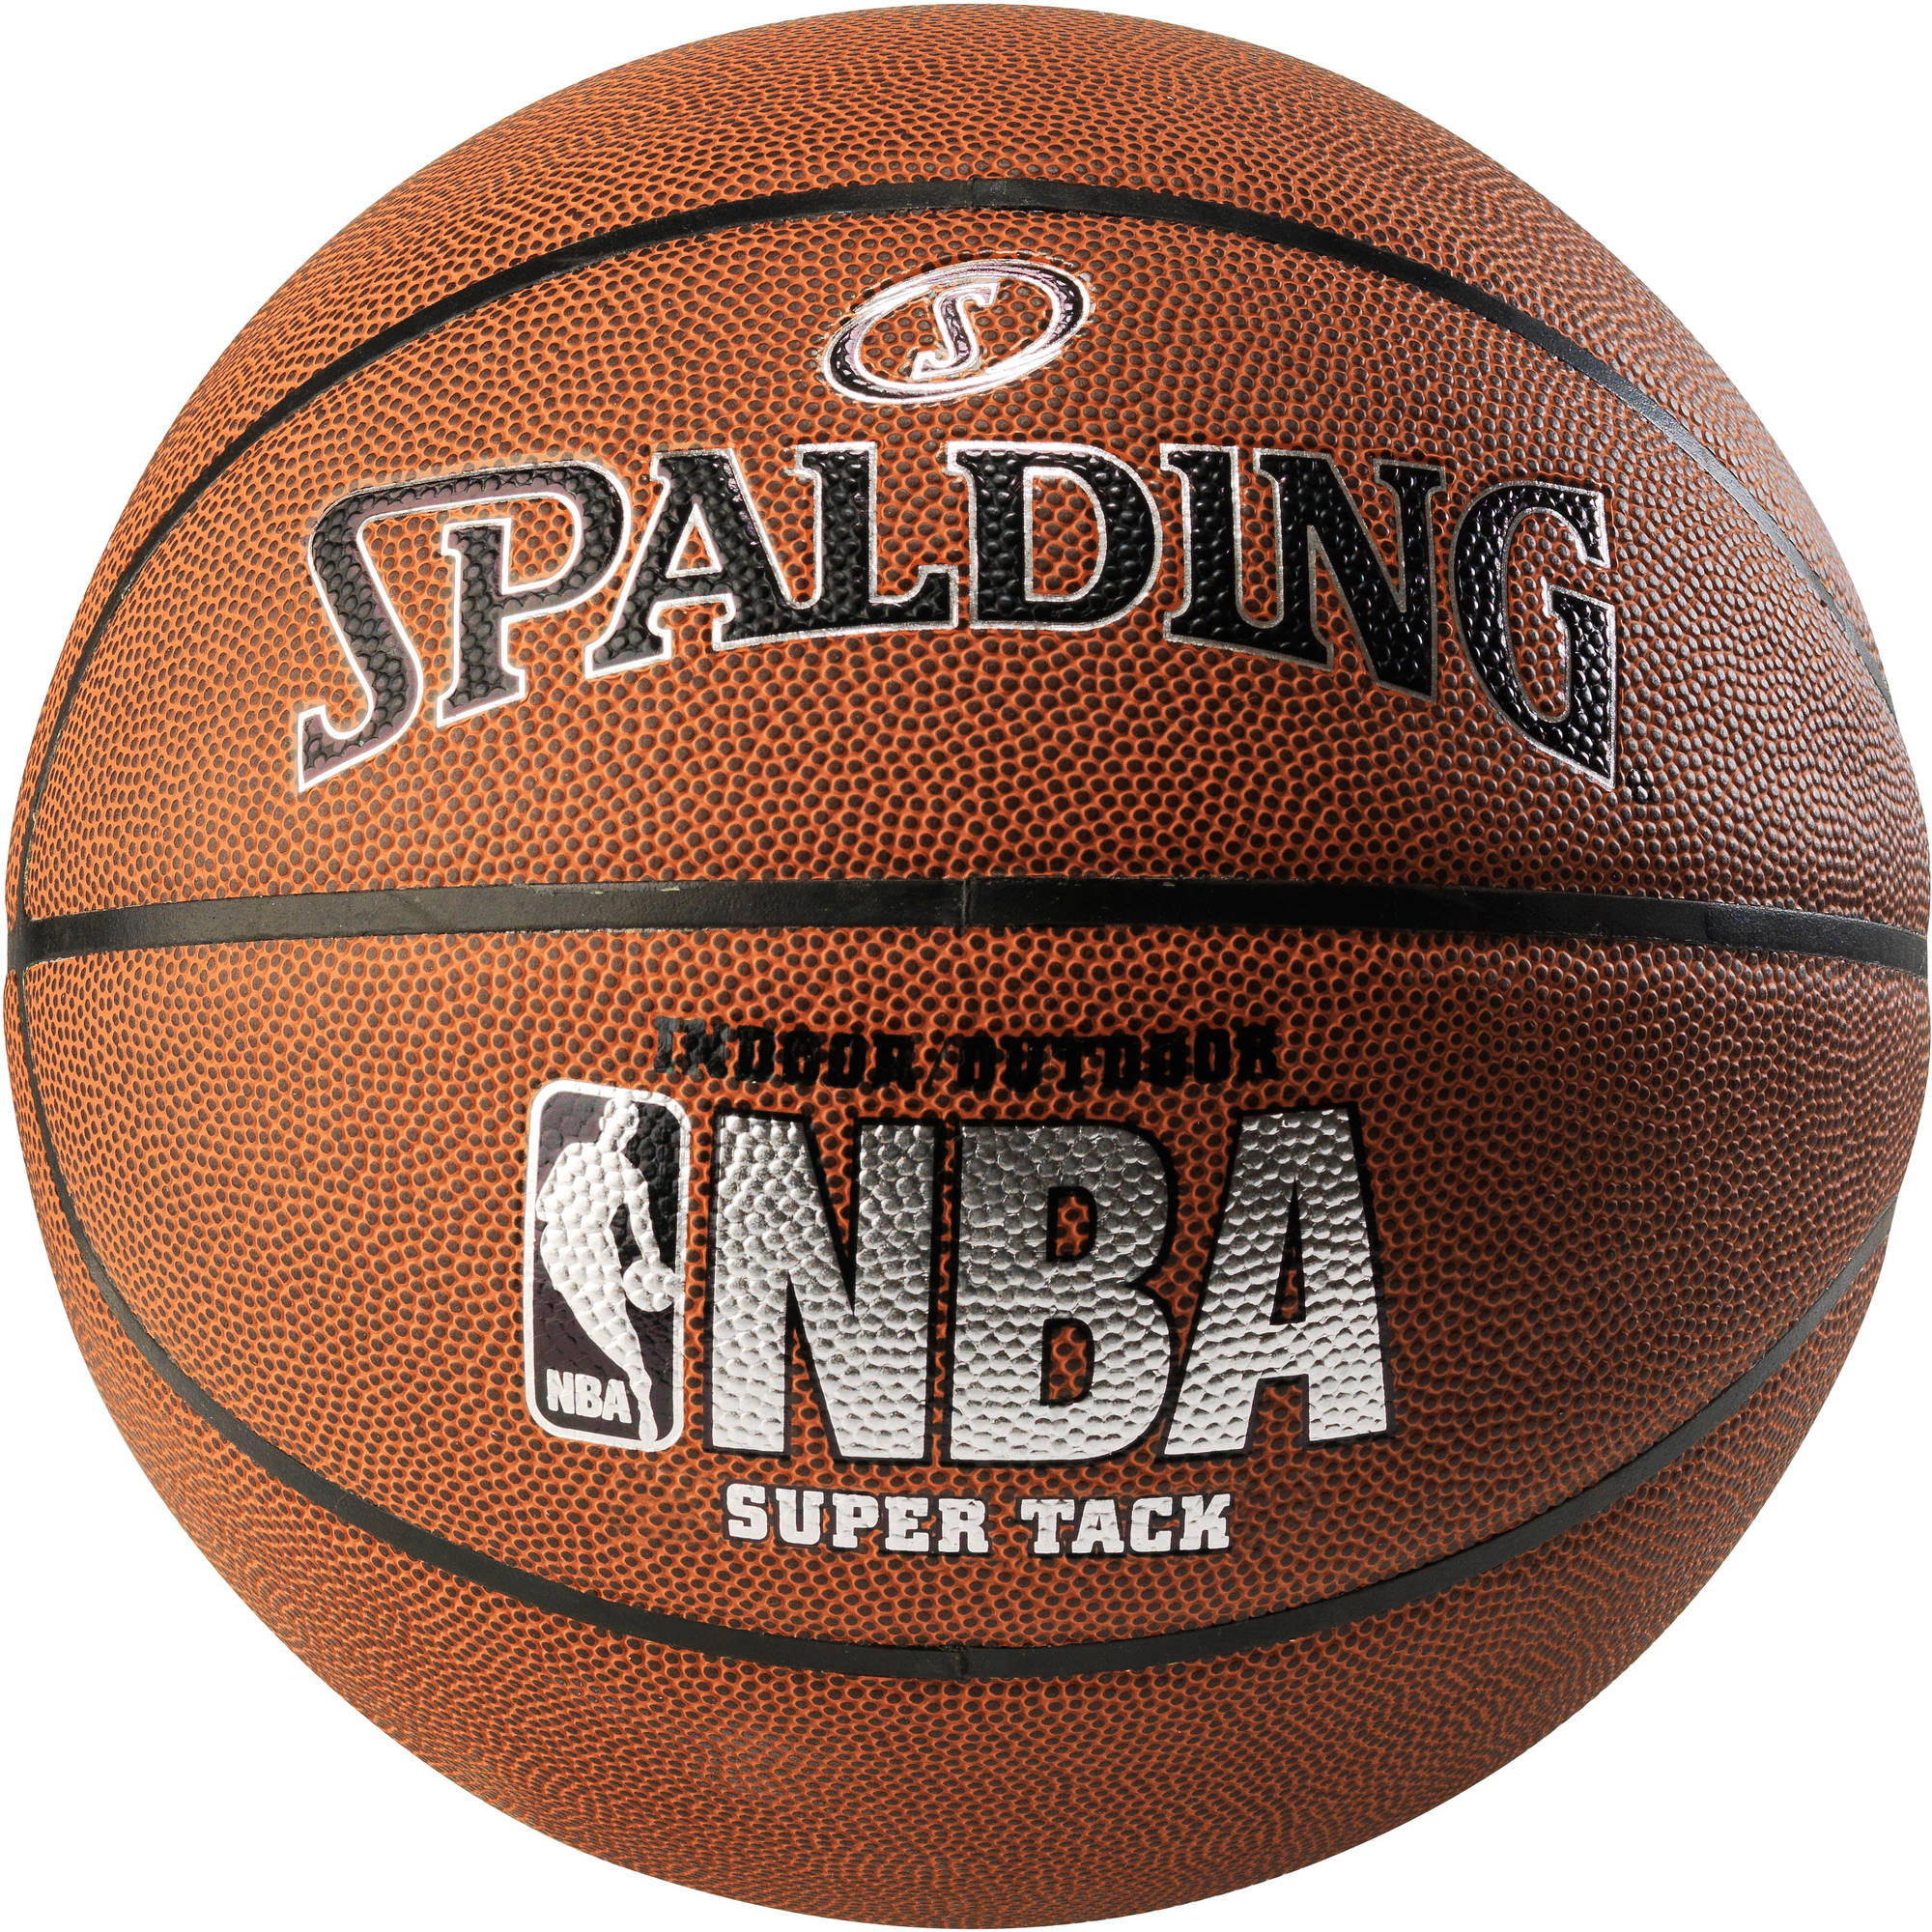 Spalding NBA SUPER TACK Basketball - Walmart.com